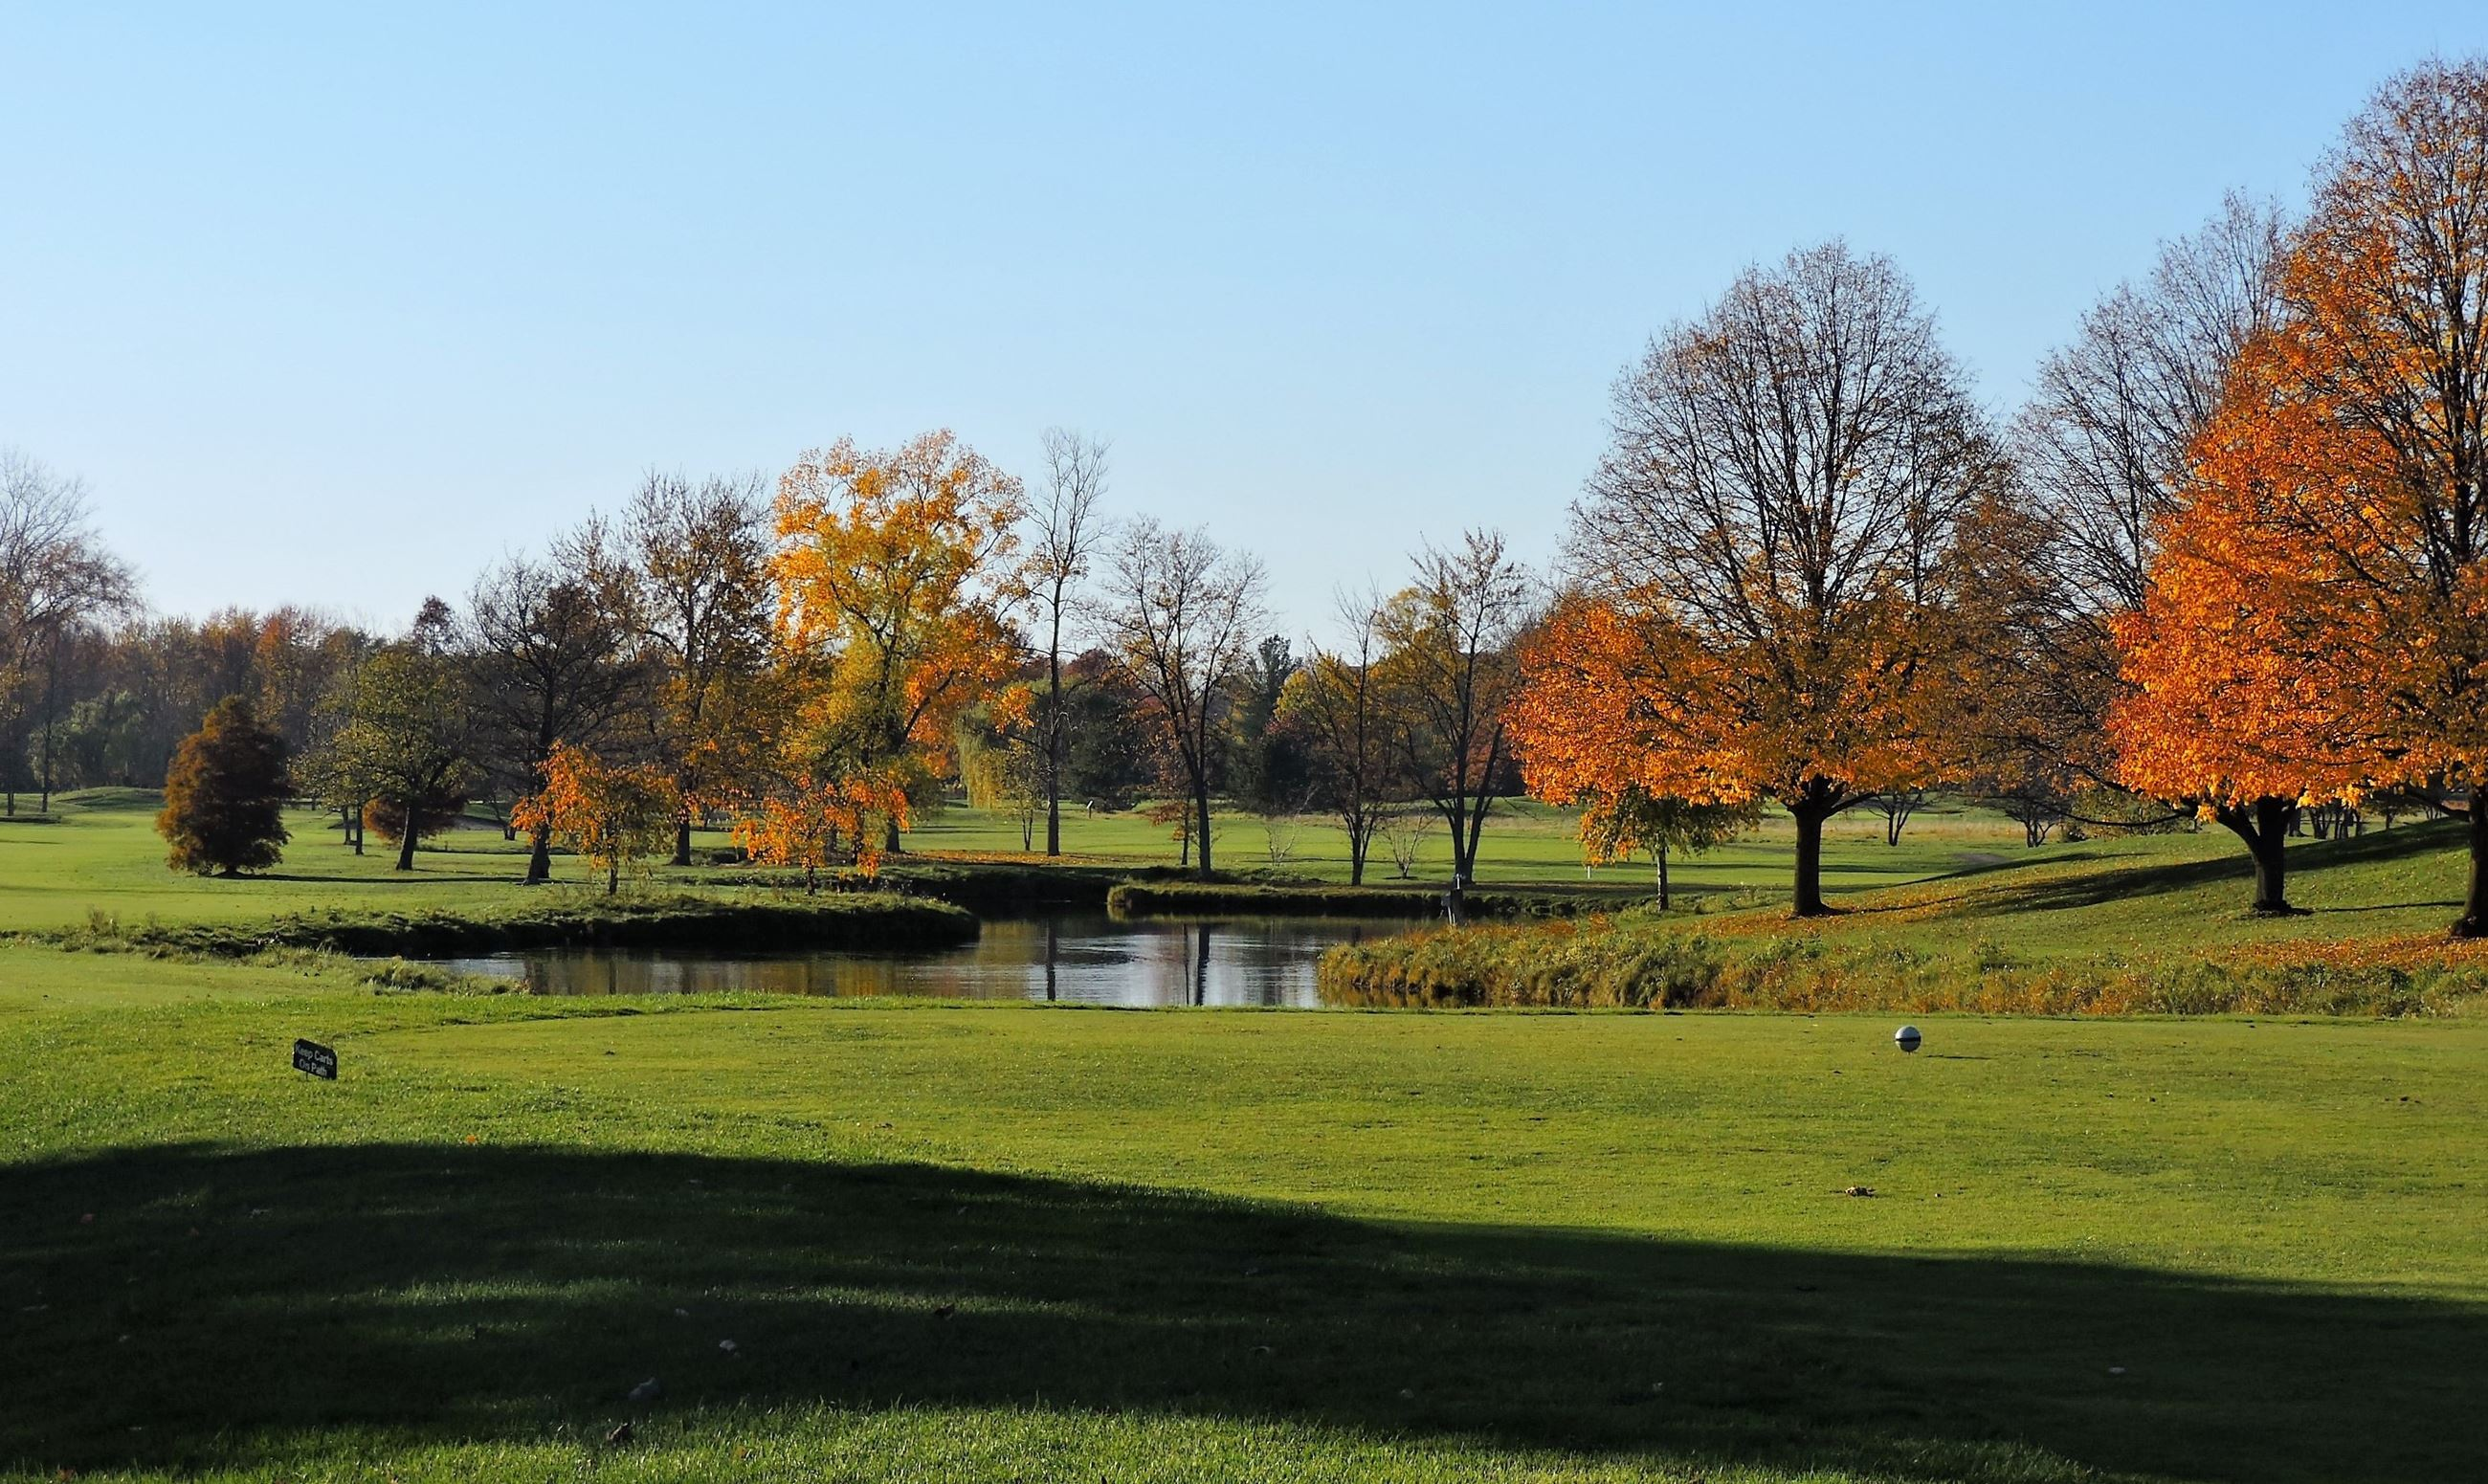 Pond and Trees at 18-Hole Golf Course